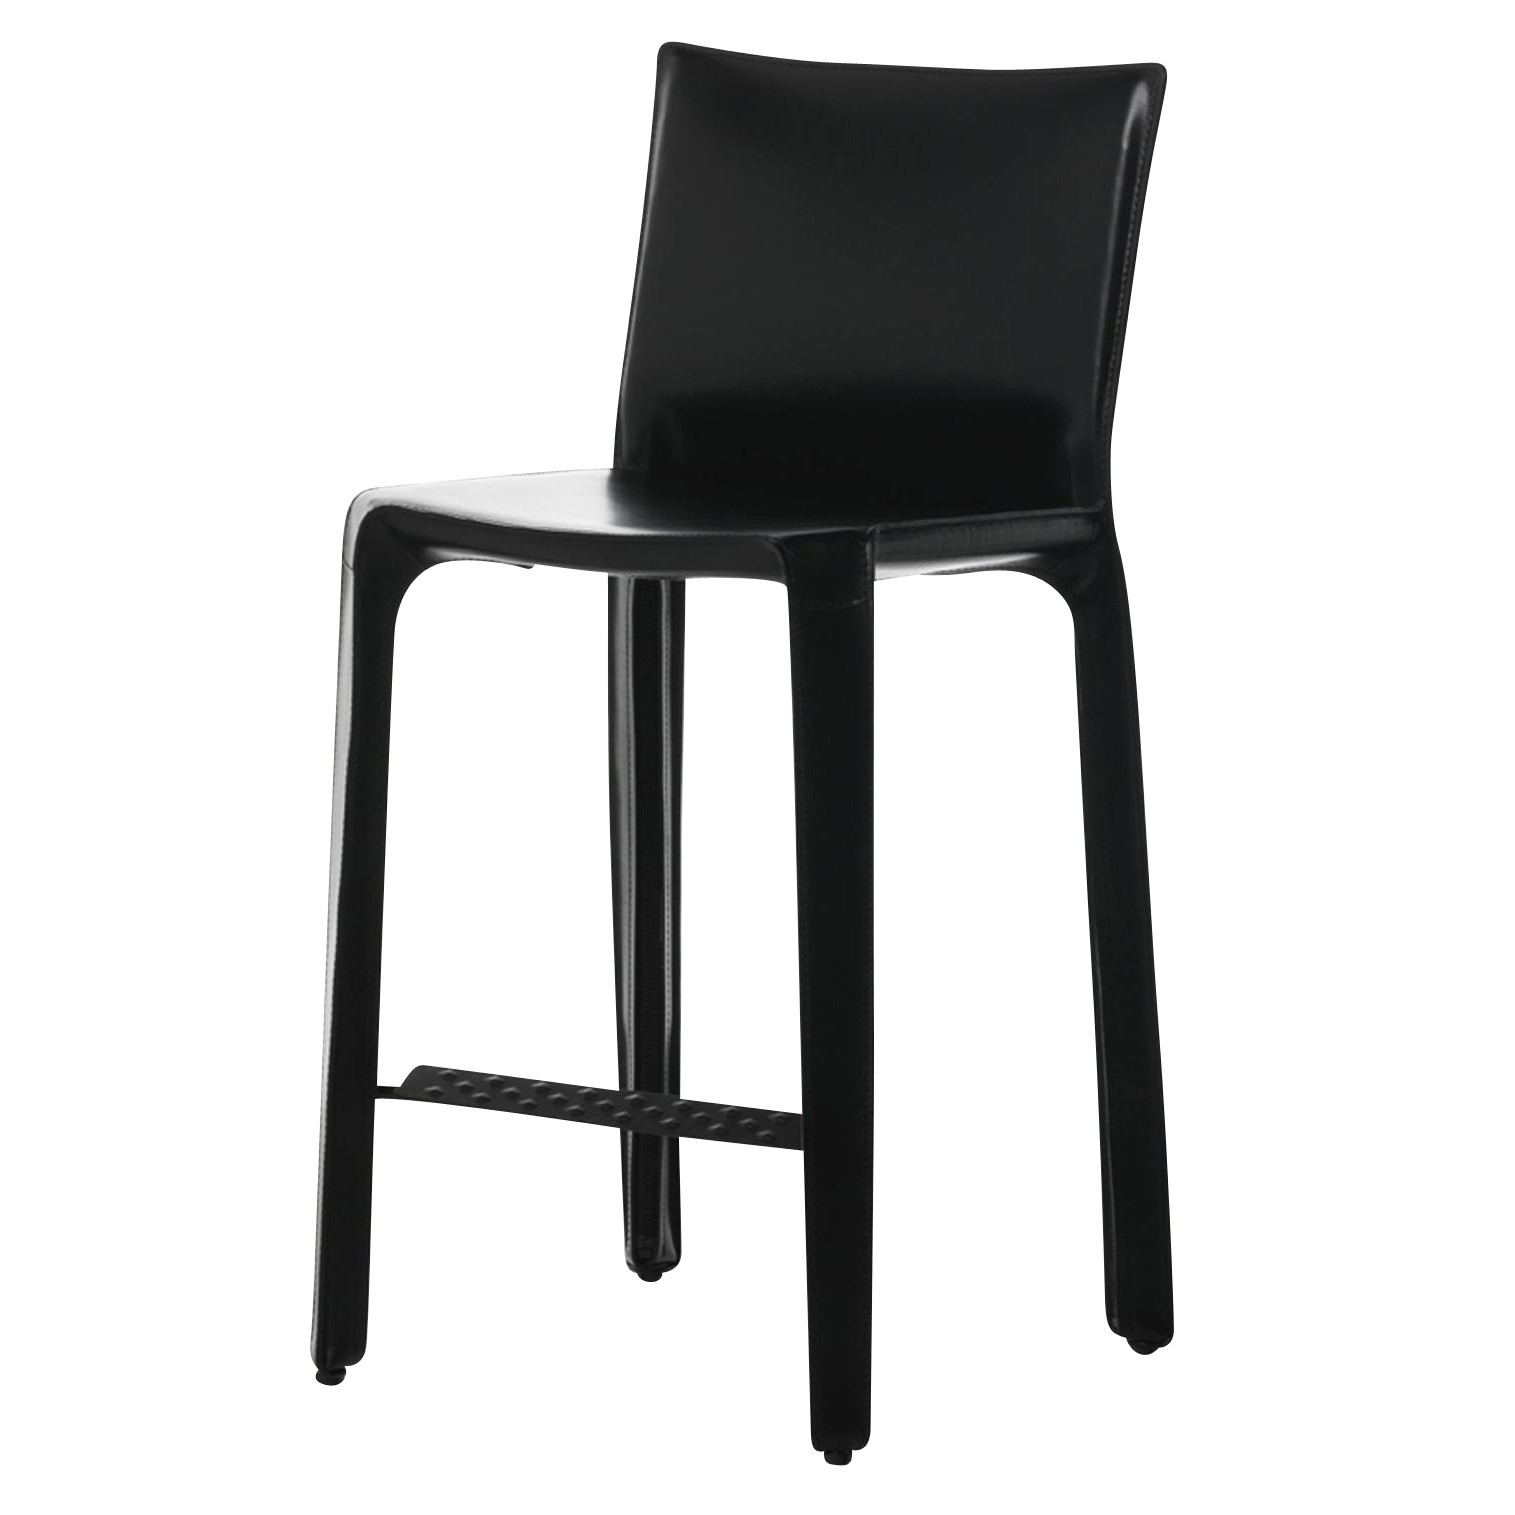 Sensational Cassina Cab Mario Bellini Barstool Ocoug Best Dining Table And Chair Ideas Images Ocougorg